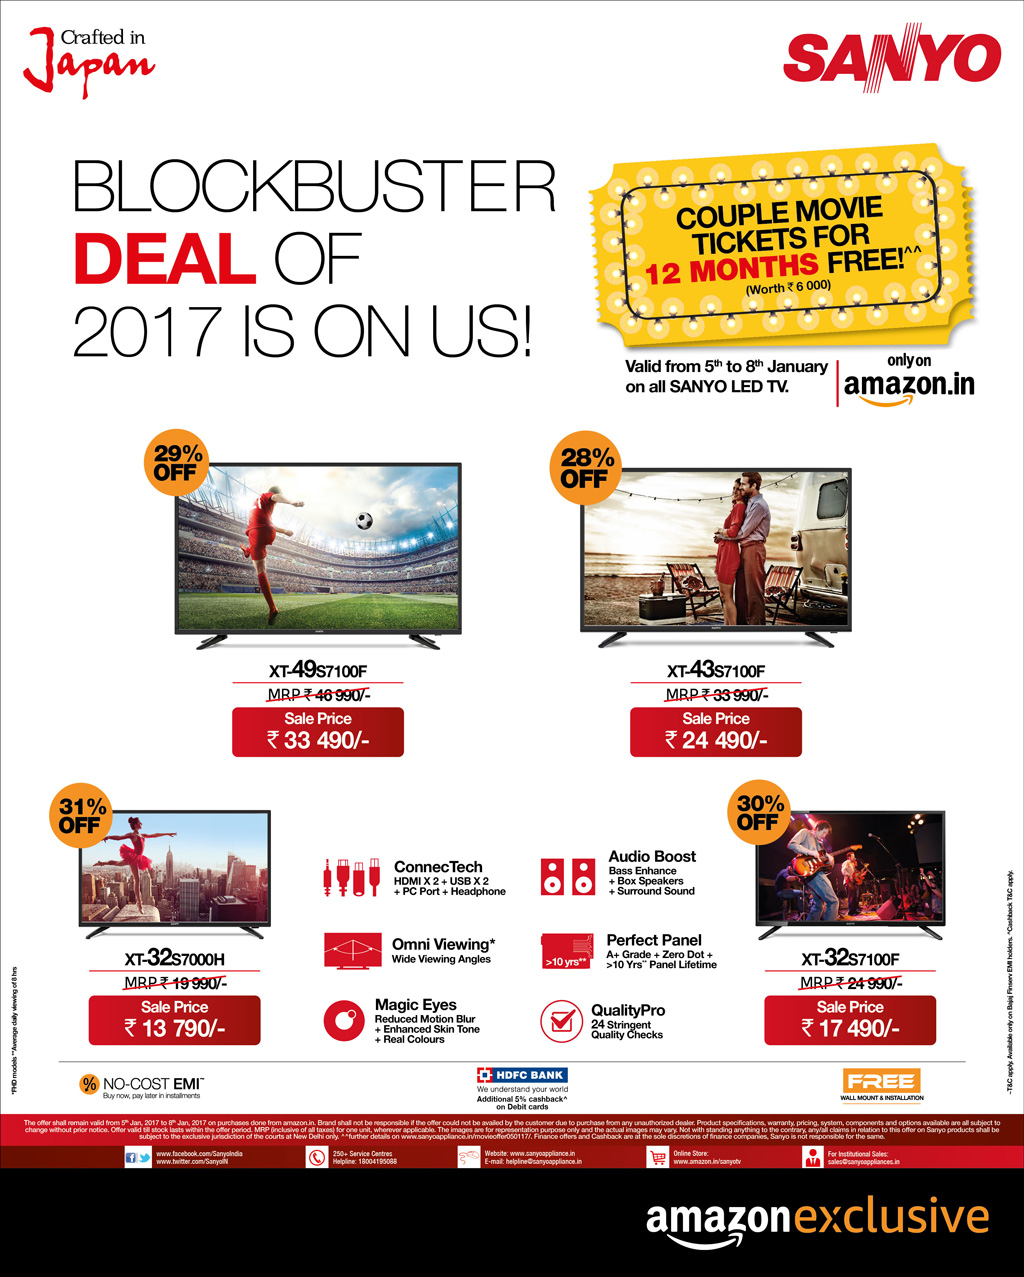 Sanyo-Blockbuster-Deal-of-2017